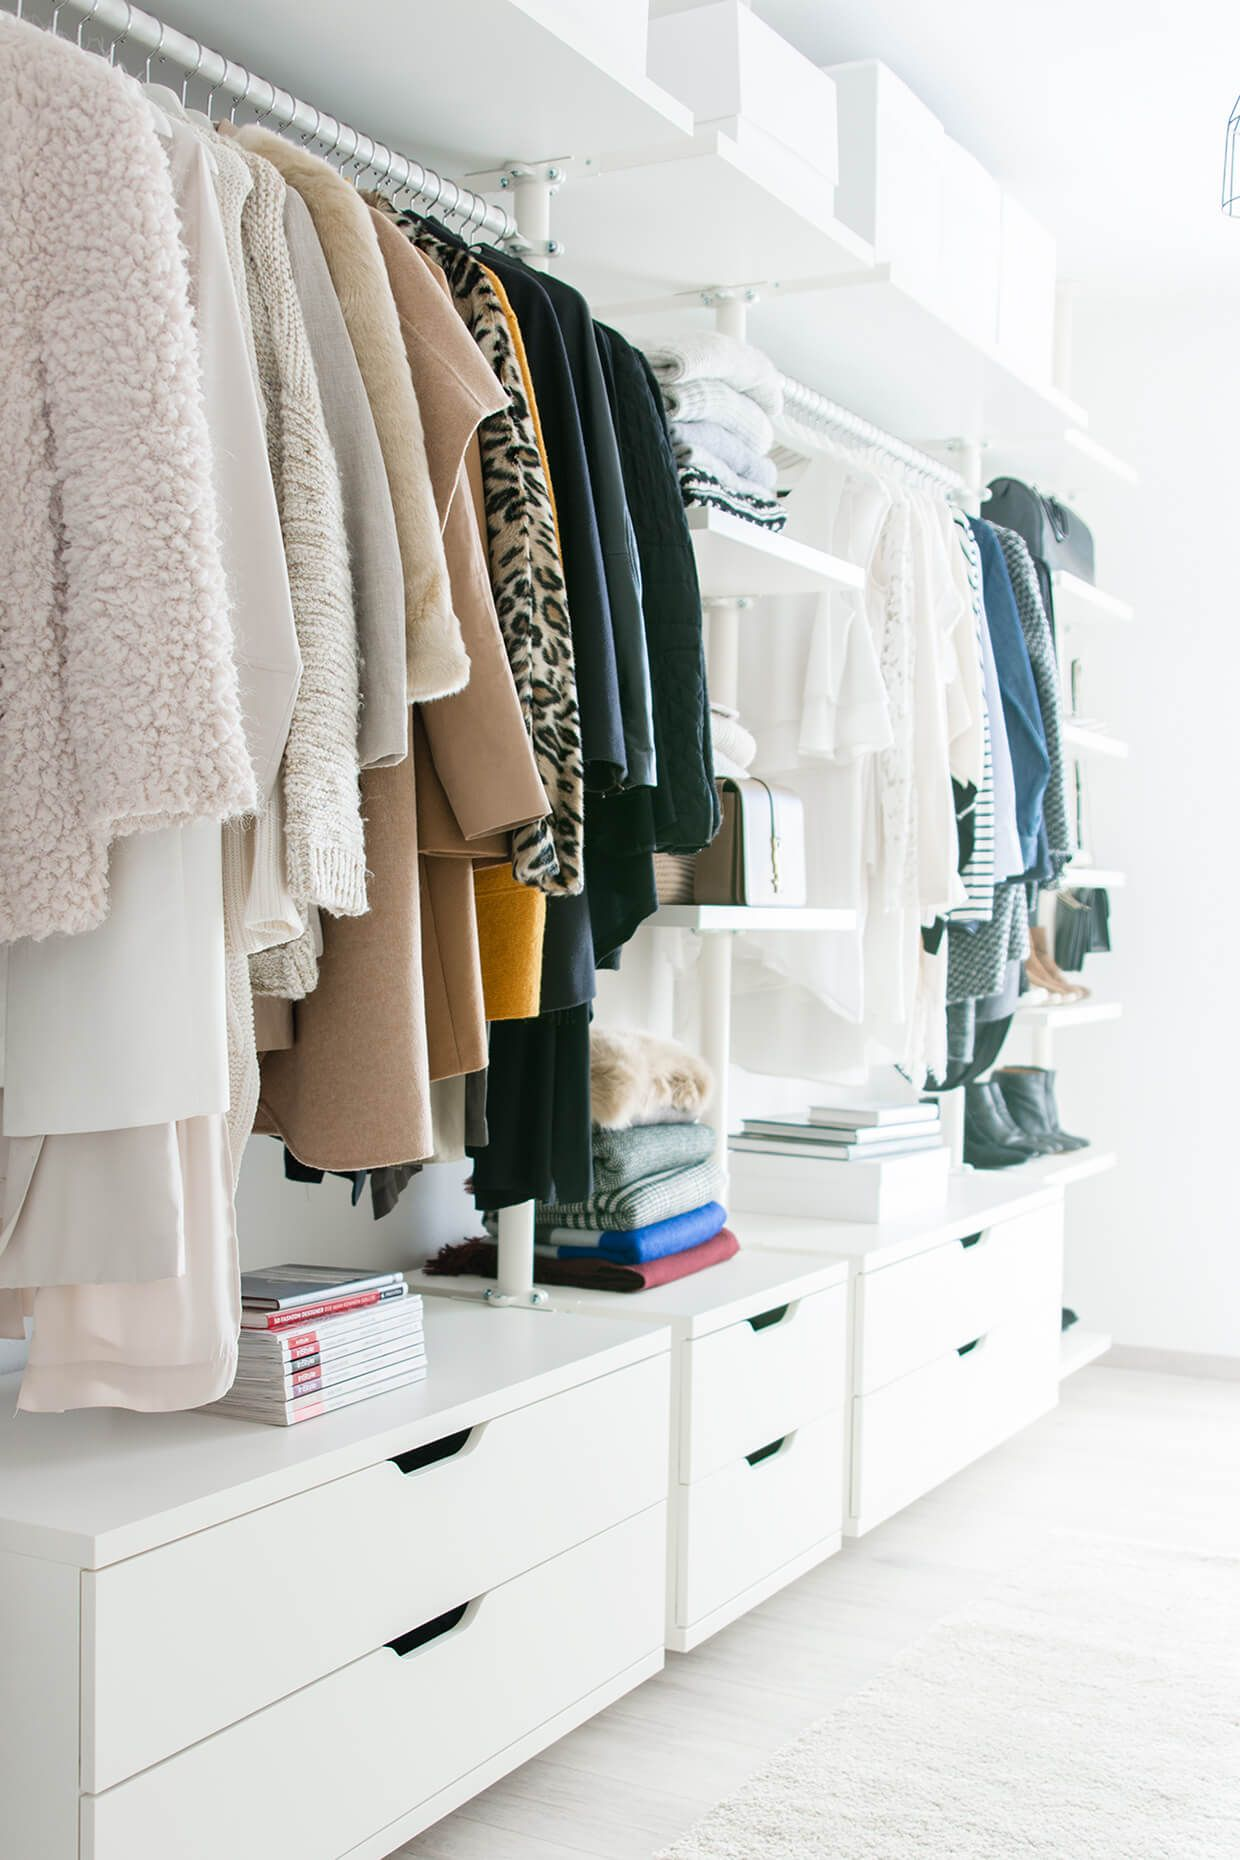 ikea walk in closet that is not pax | Walk-In Closet Designs ...